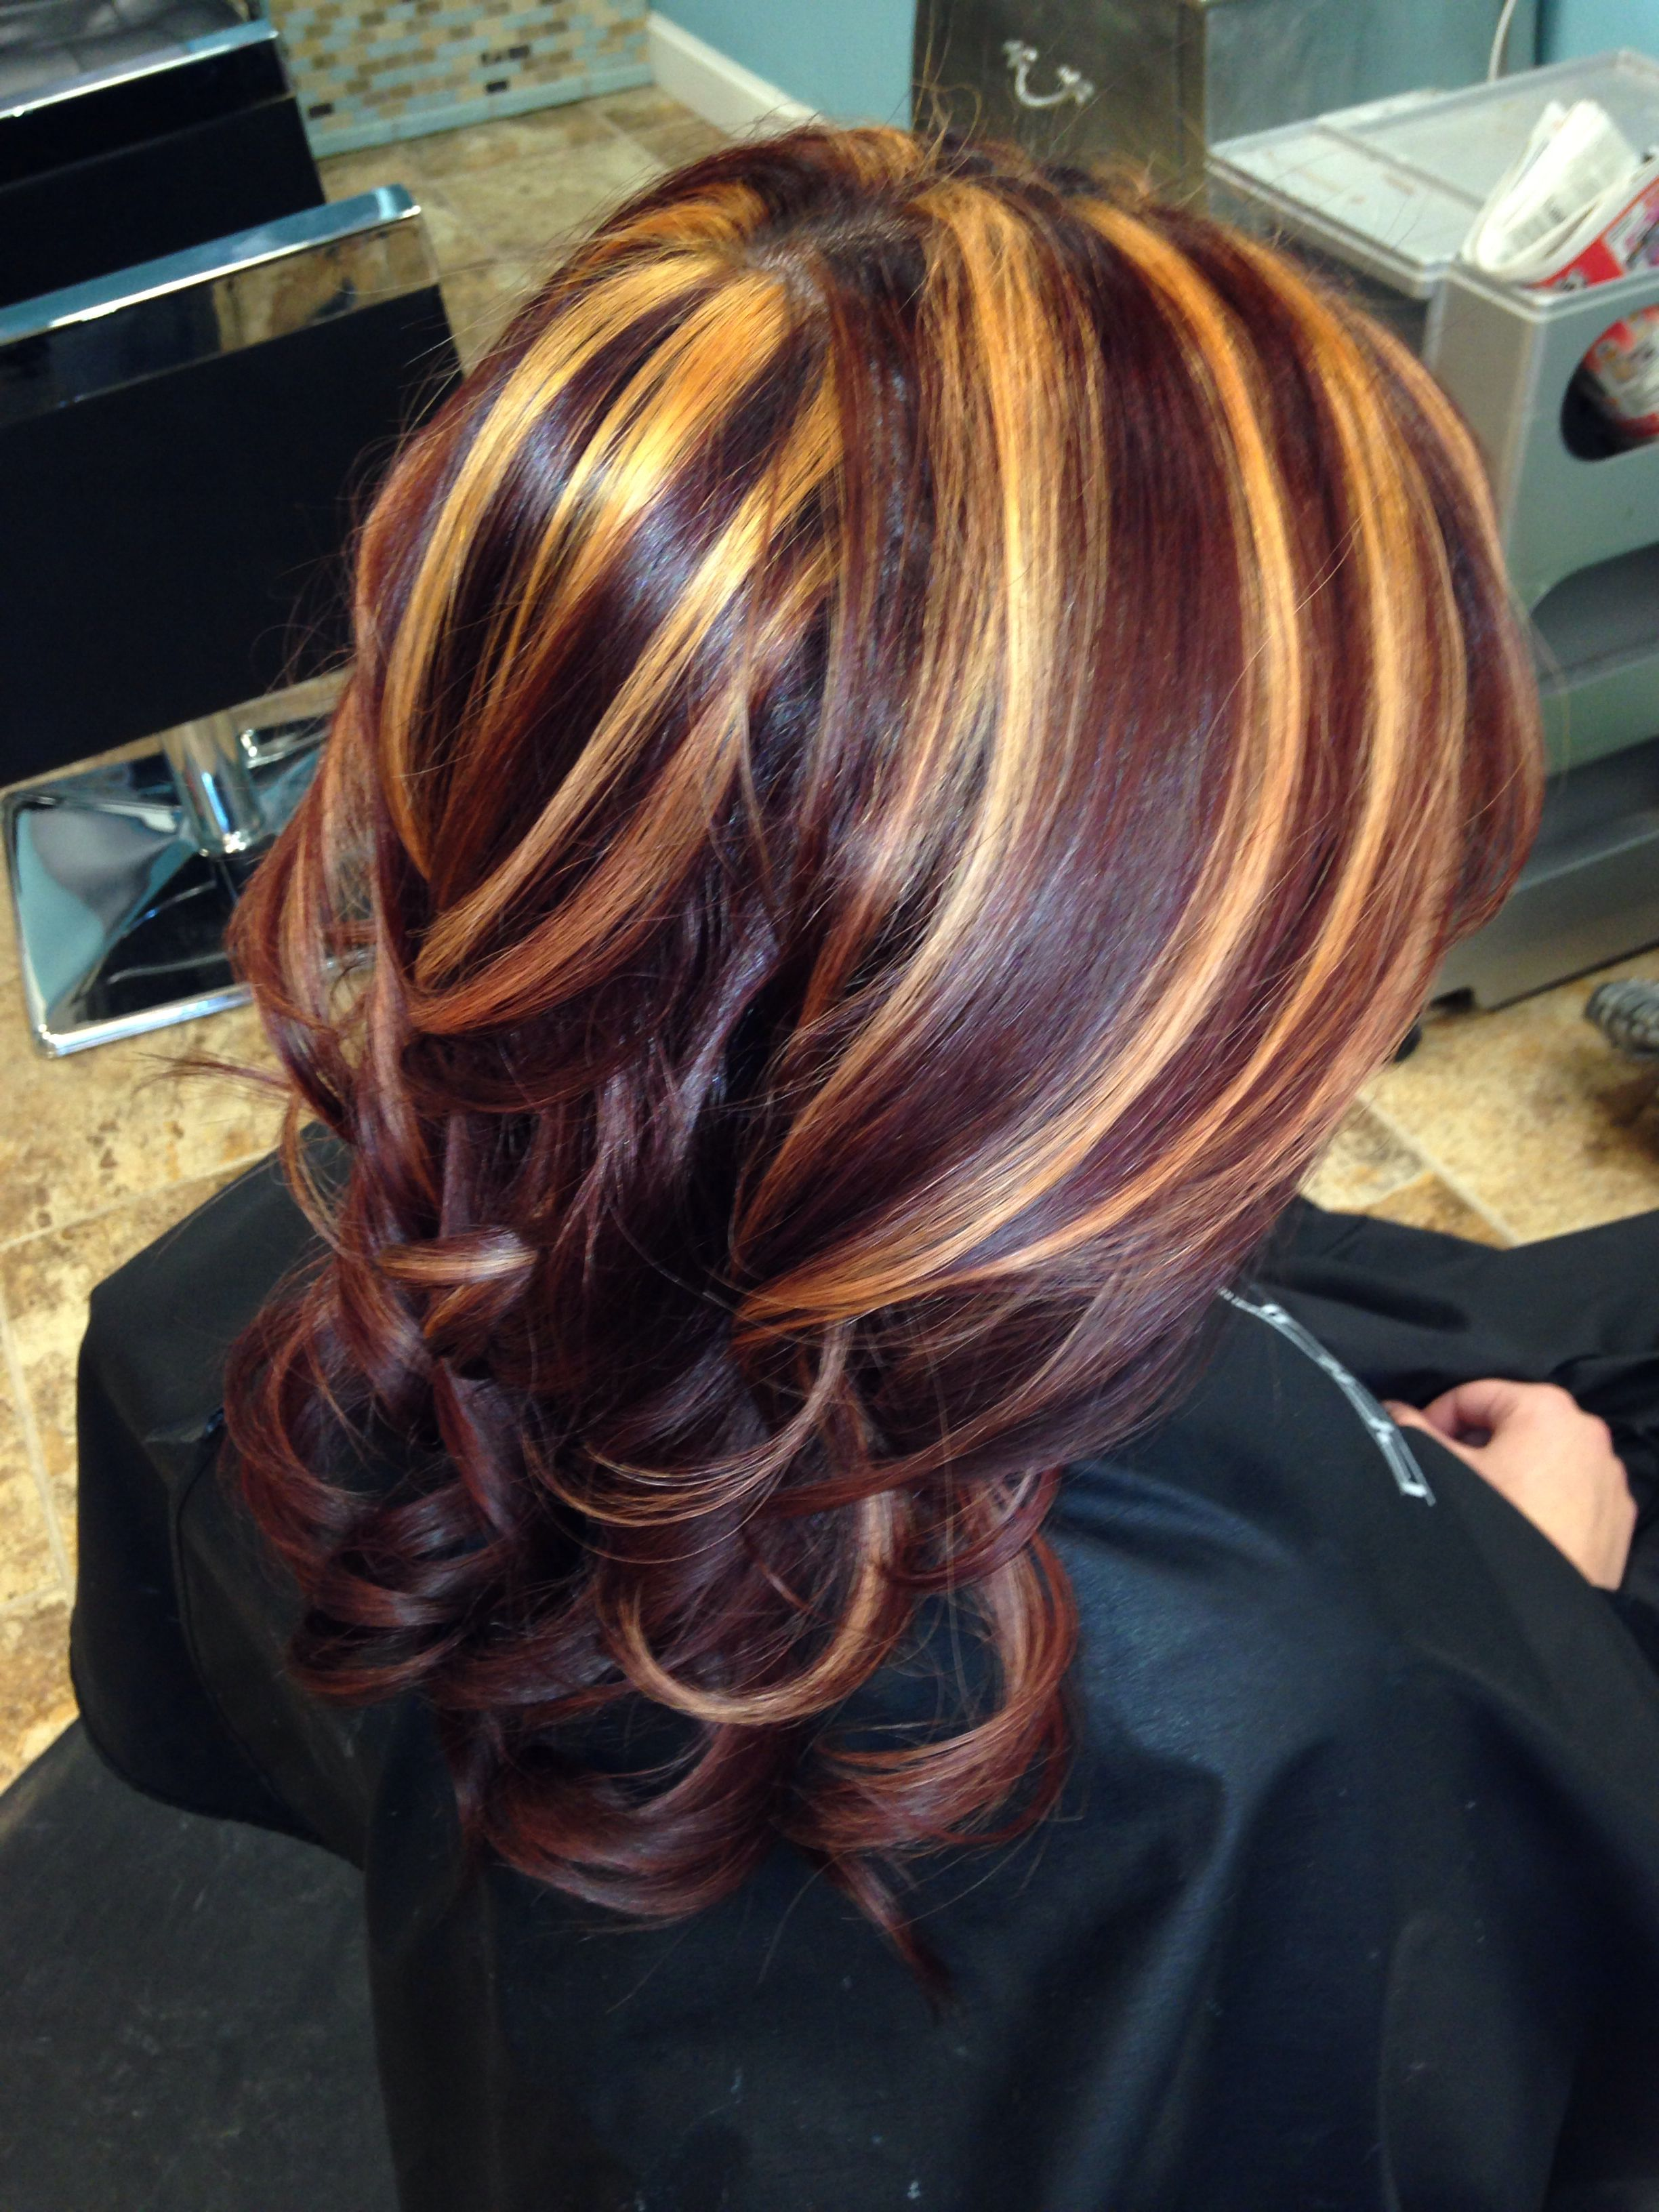 Red and blonde highlights by me | Peace love hair ...